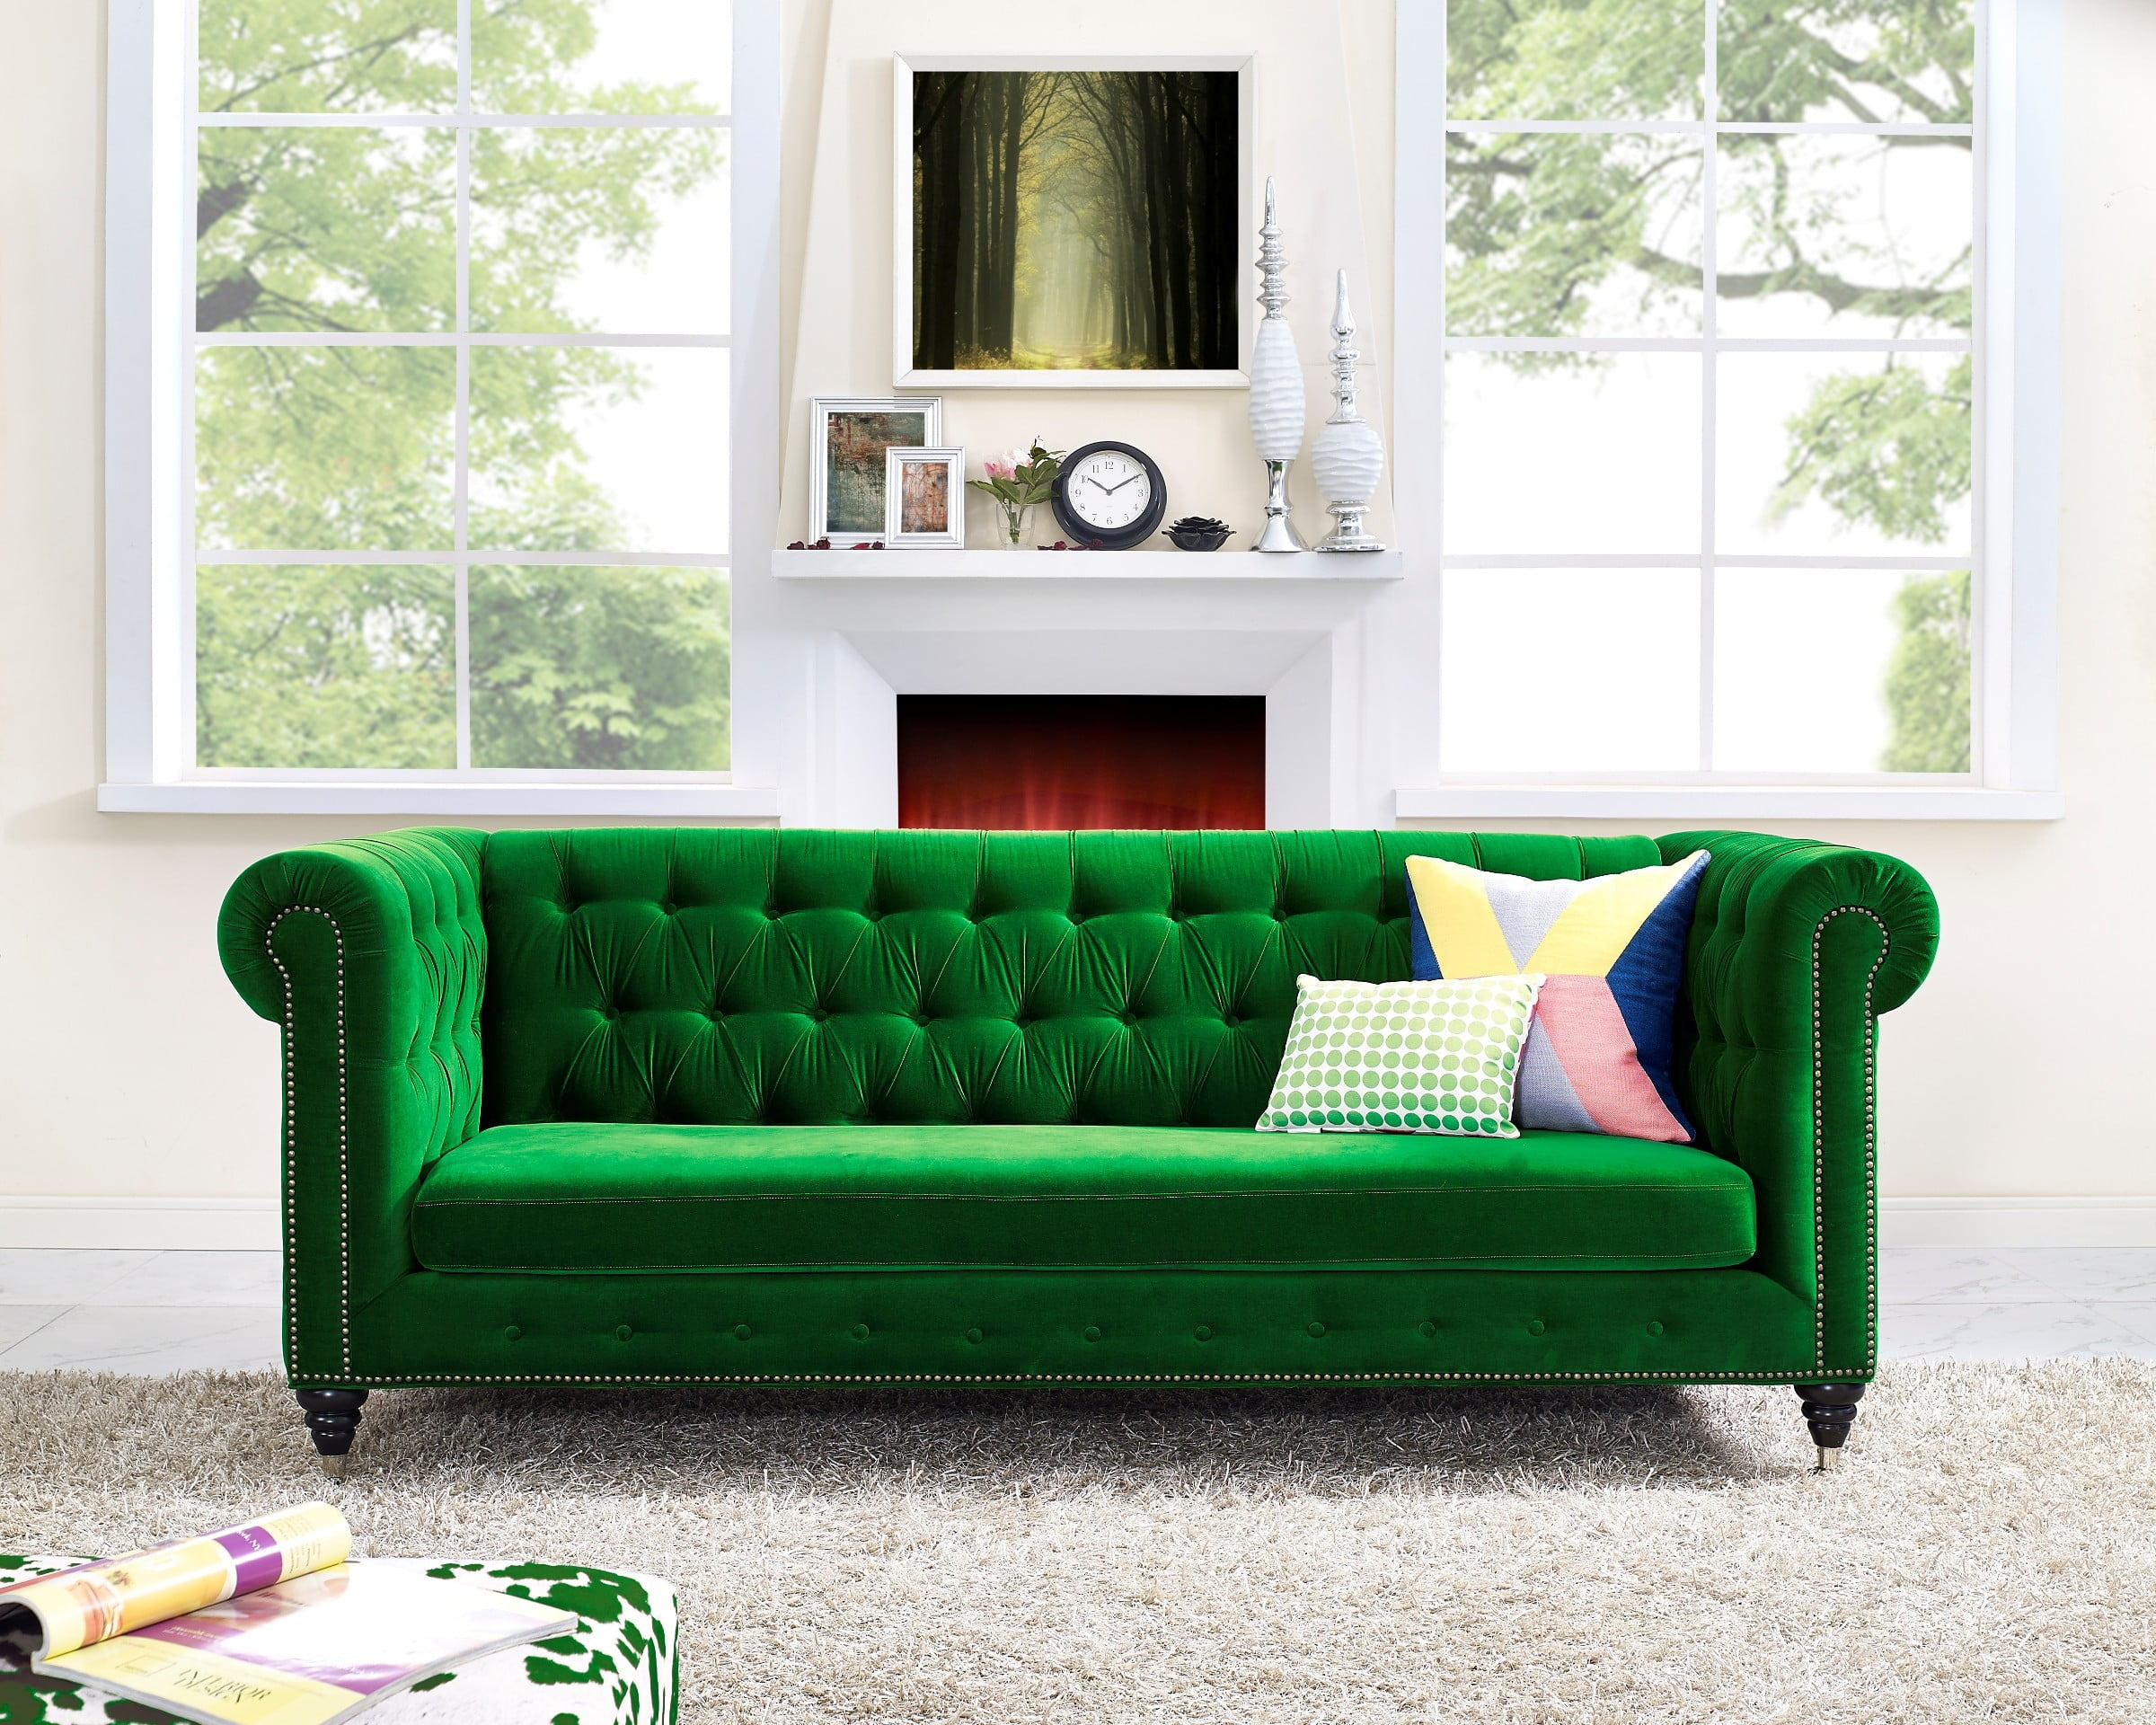 Hanny Green Velvet Sofa From Tov (S42)   Coleman Furniture For Green Sectional Sofas (View 9 of 15)